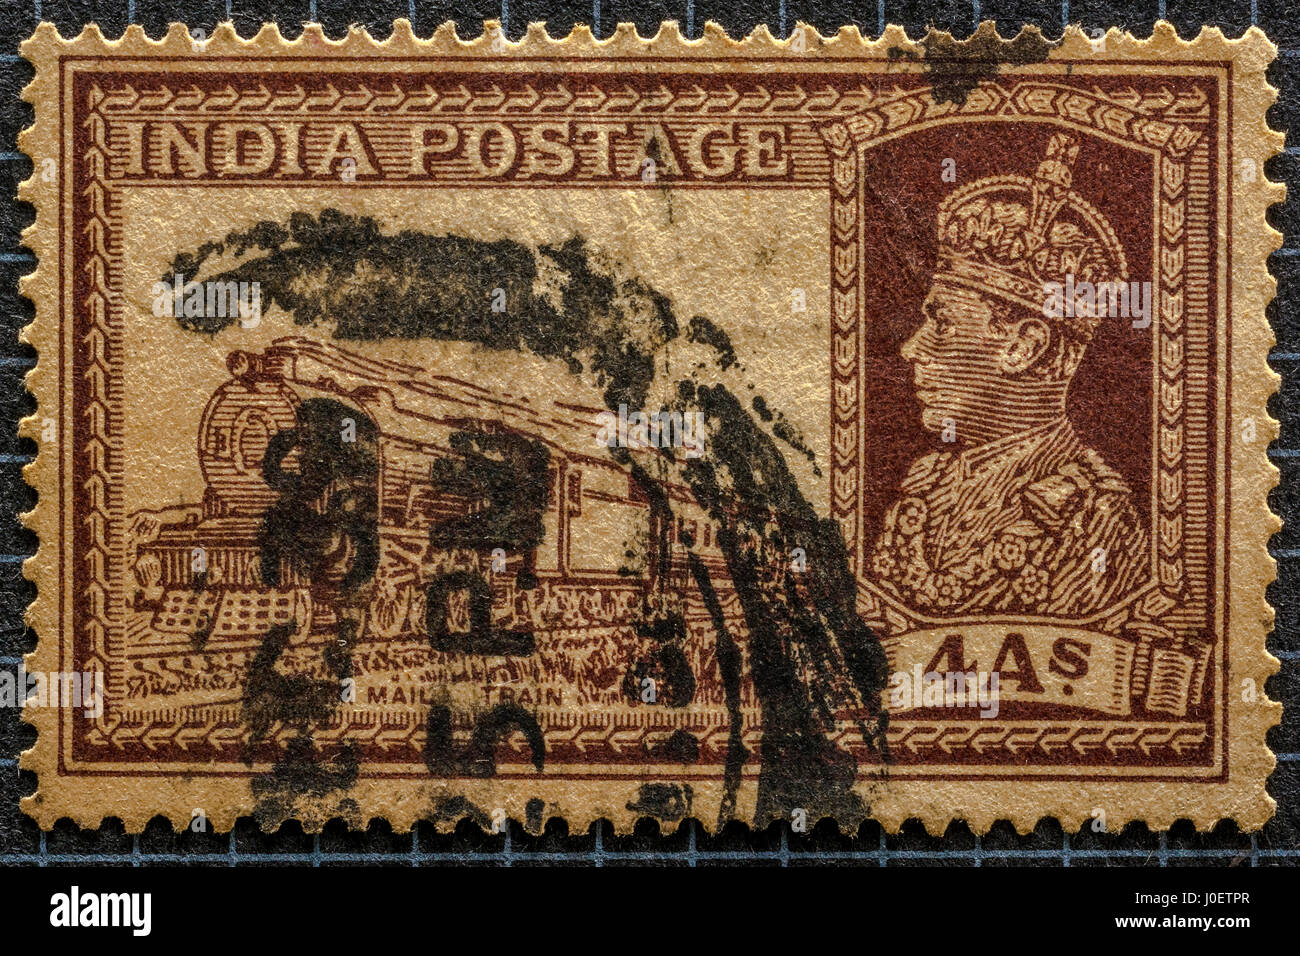 old vintage Transport mail train 4 annas, postage stamps, india, asia - Stock Image